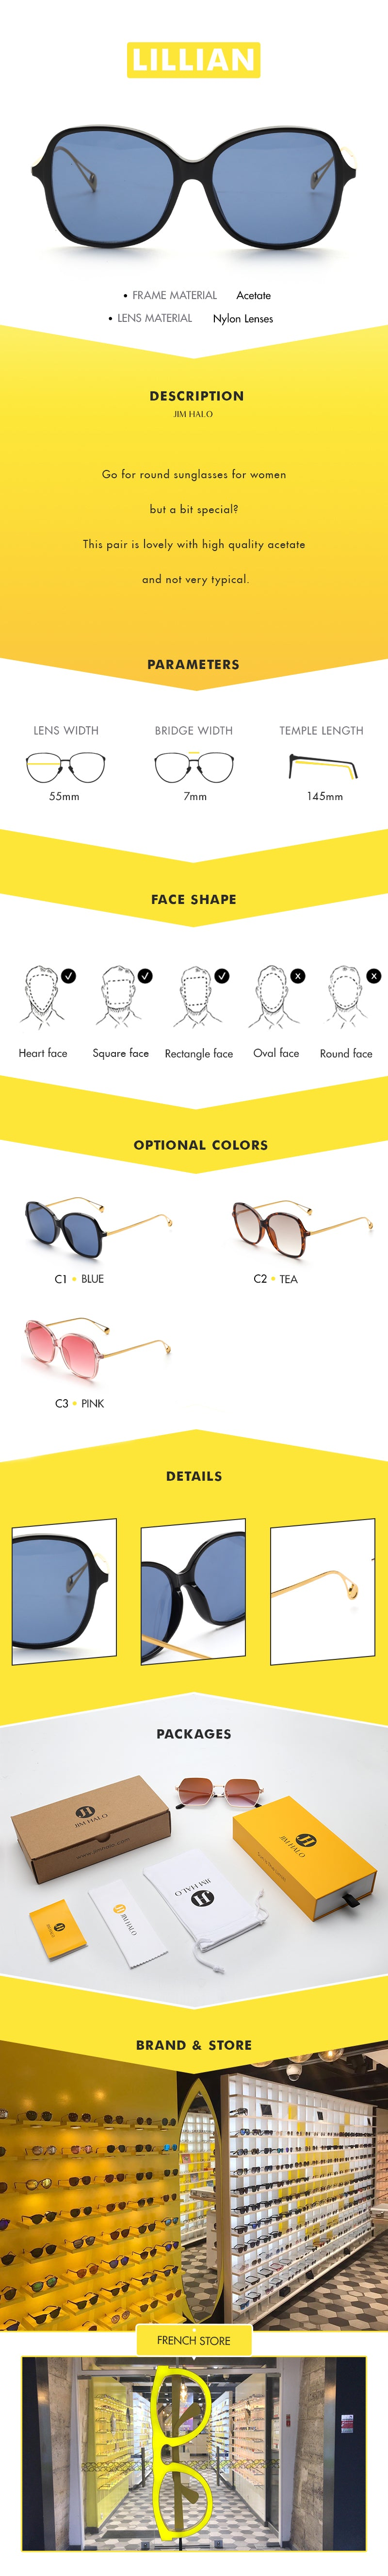 Go for round sunglasses for women but a bit special? This pair is lovely with high quality acetate and not very typical.